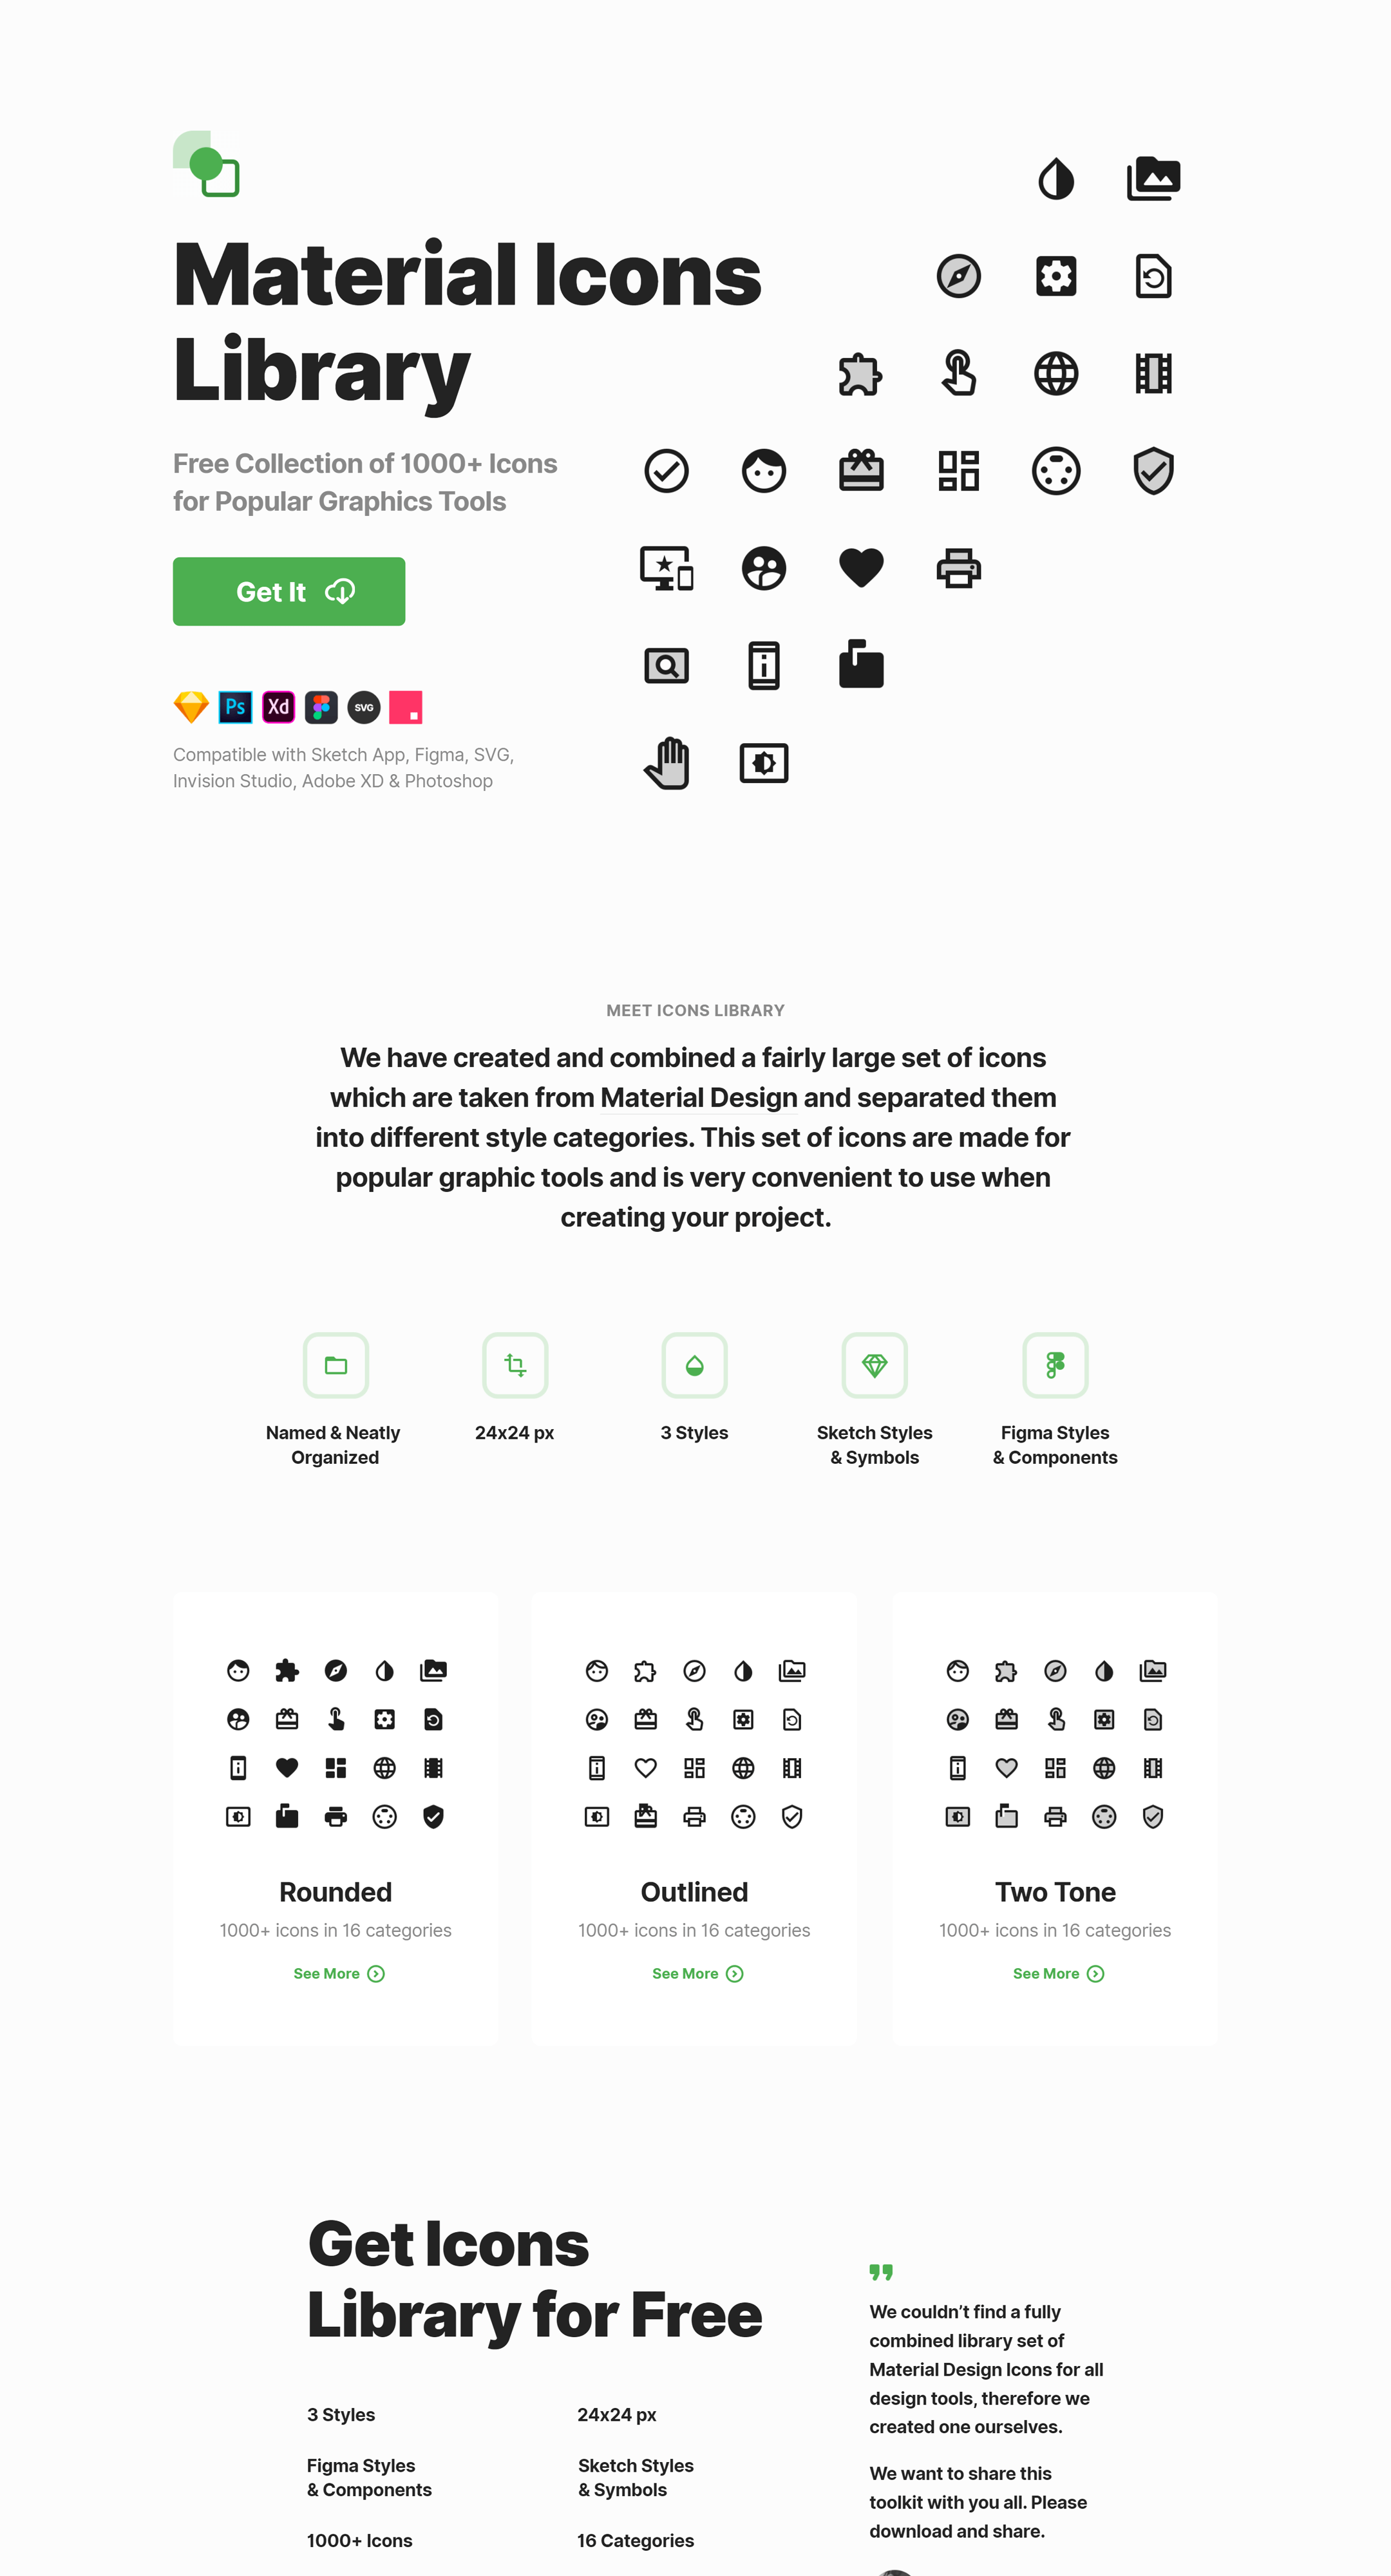 Free Collection of 1000+ Icons for Popular Graphics Tools. Large set of icons which are taken from Material Design and separated them into different style categories. This set of icons are made for popular graphic tools and is very convenient to use when creating your project.